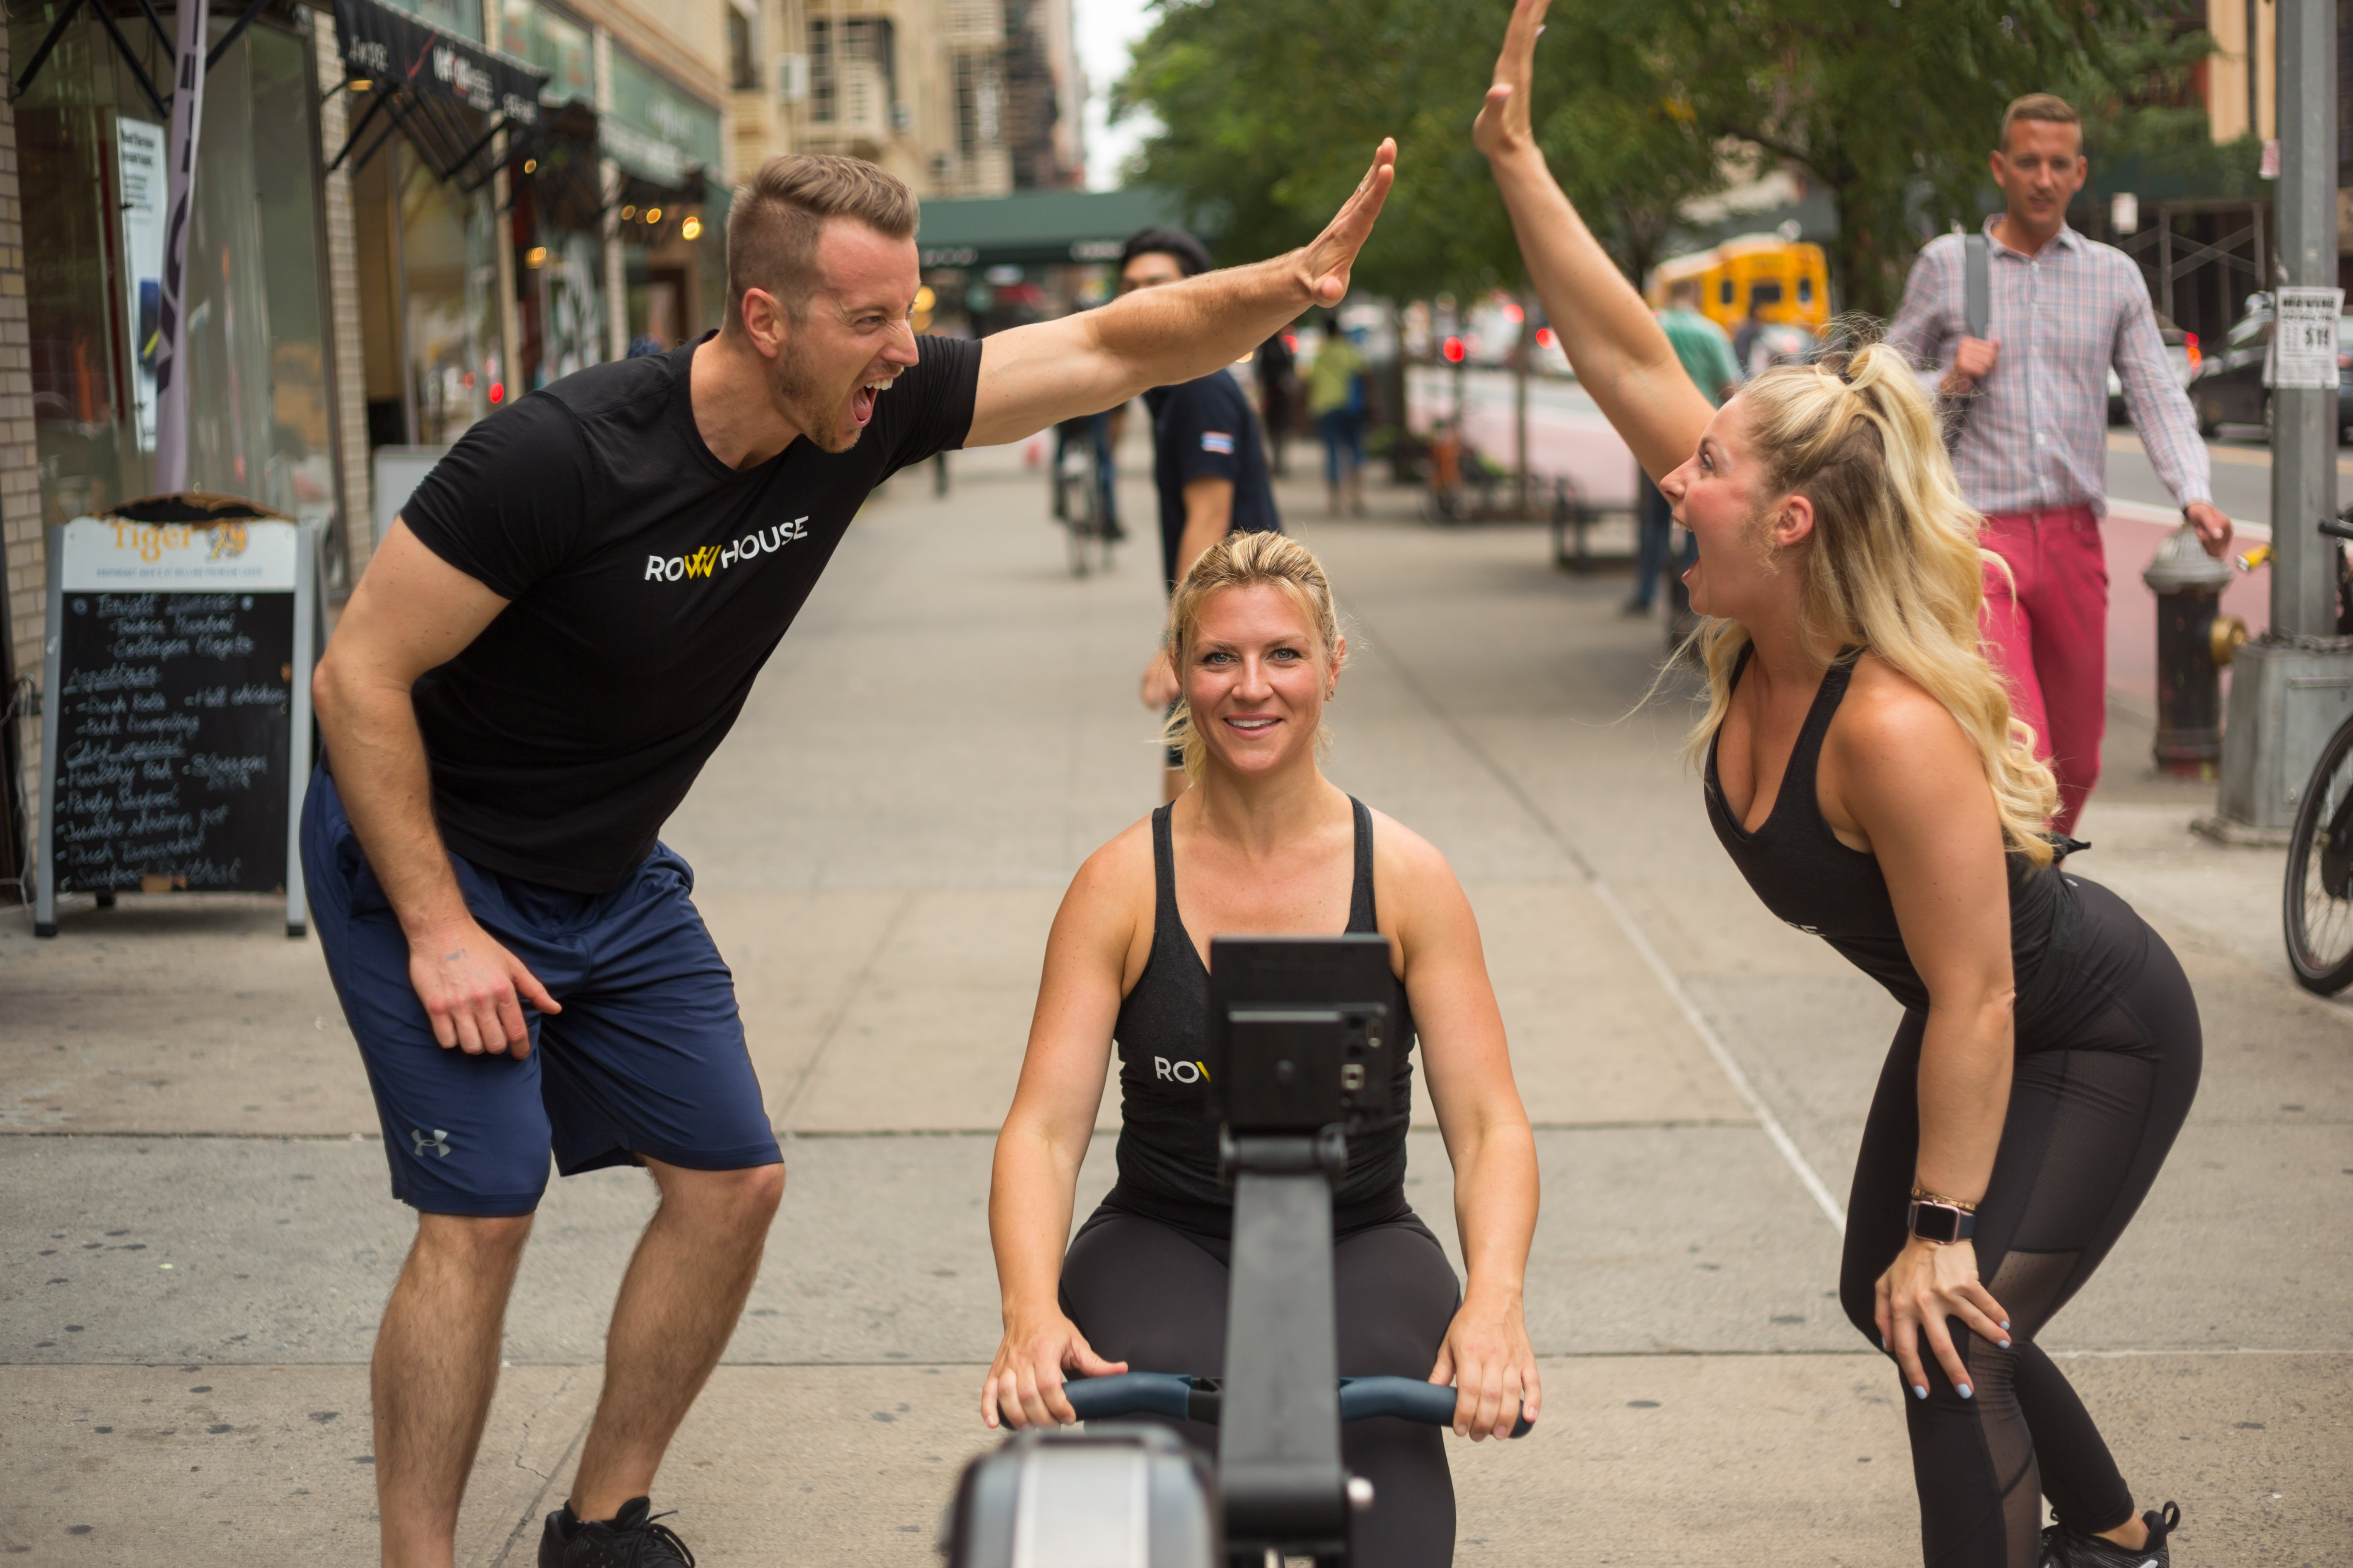 New to Row House? Tips for your first class